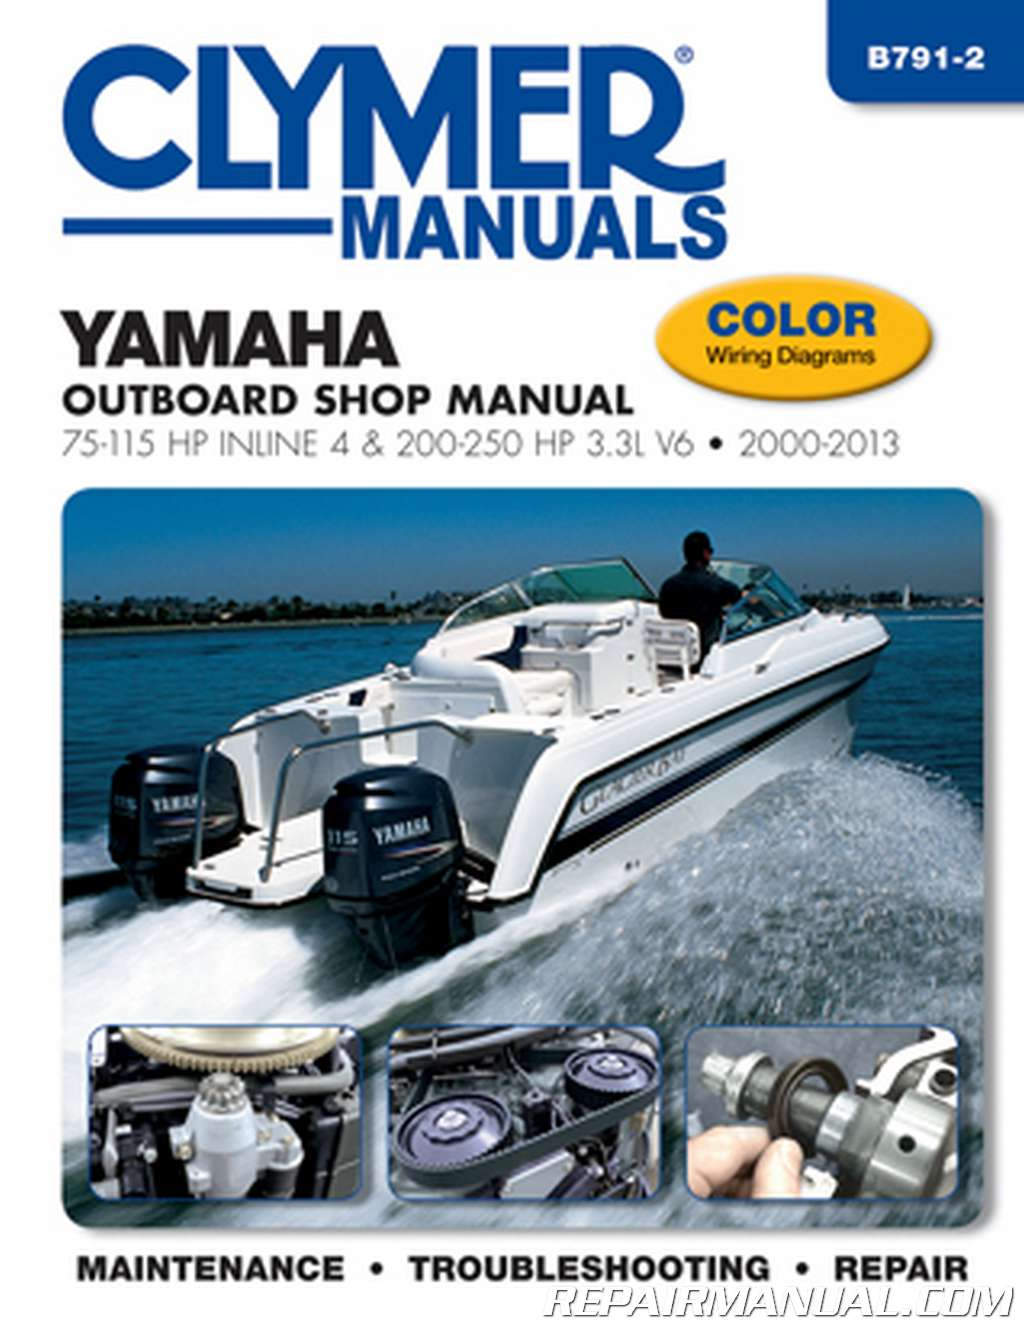 2000-2013 Yamaha Outboard Shop Manual 75-115 HP Inline 4 and 200-250 ...